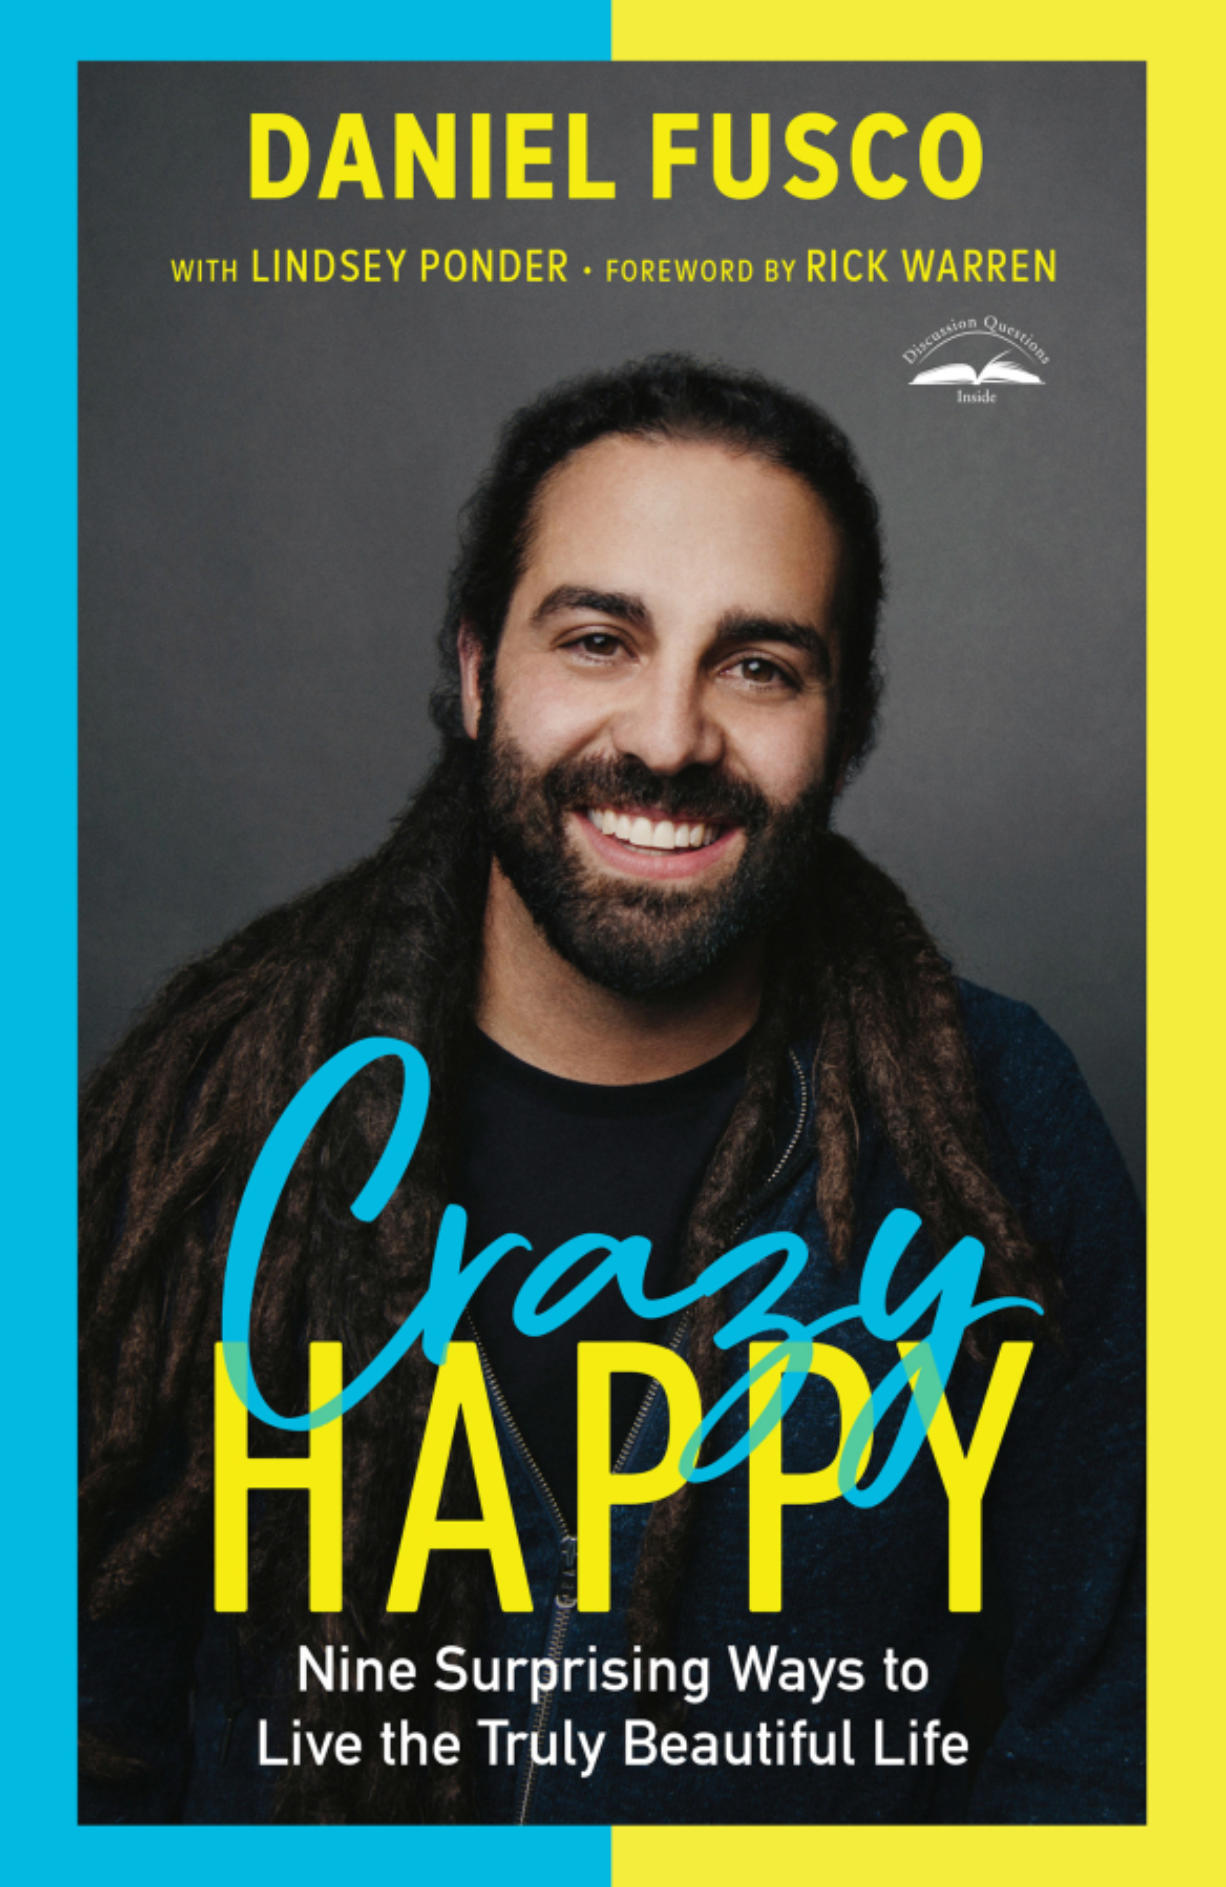 """Crossroads Church Pastor Daniel Fusco's new book, """"Crazy Happy."""" (Contributed by WaterBrook)"""